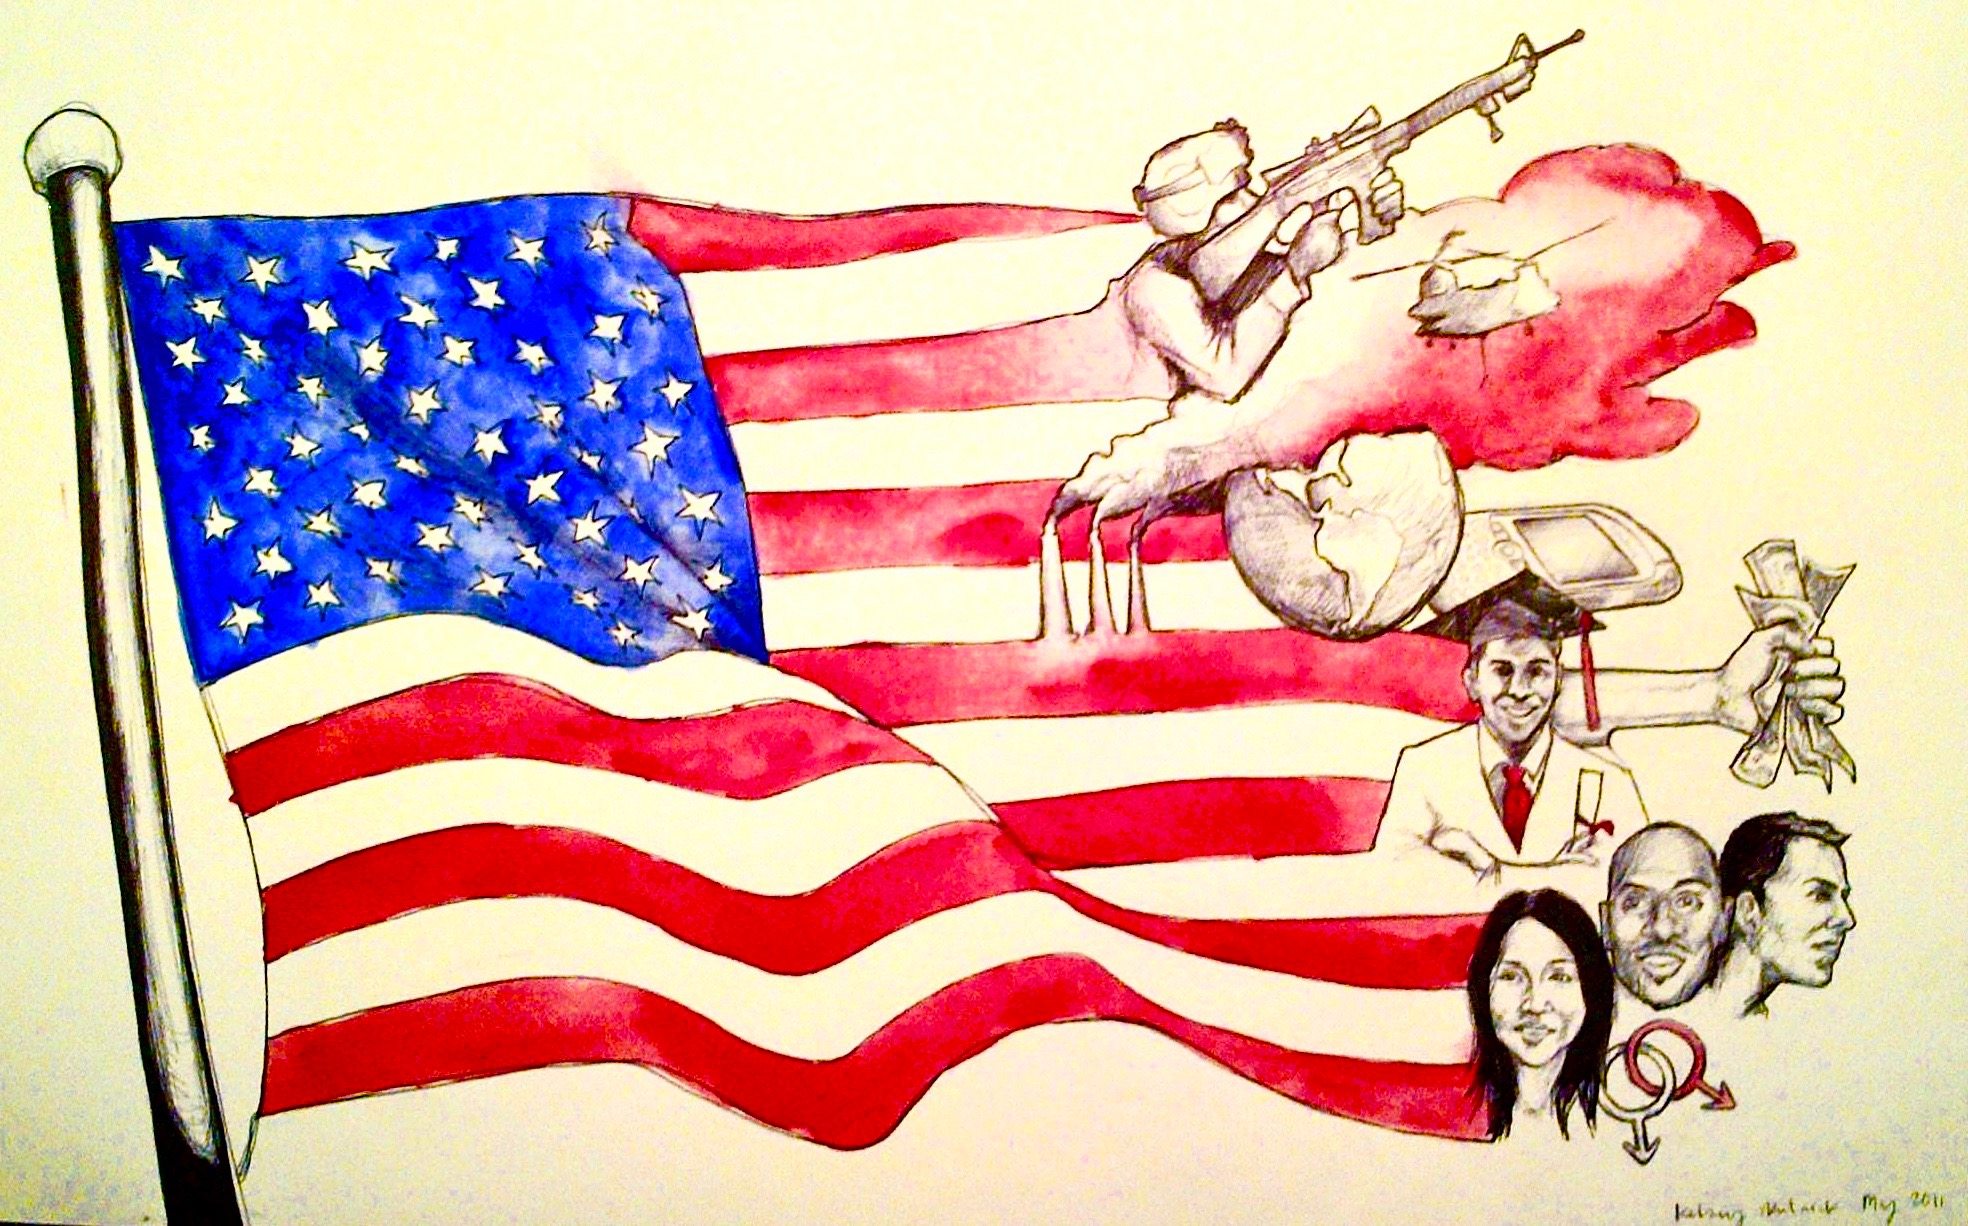 2011 Brief Perspective of America 2011, bic pen & watercolor